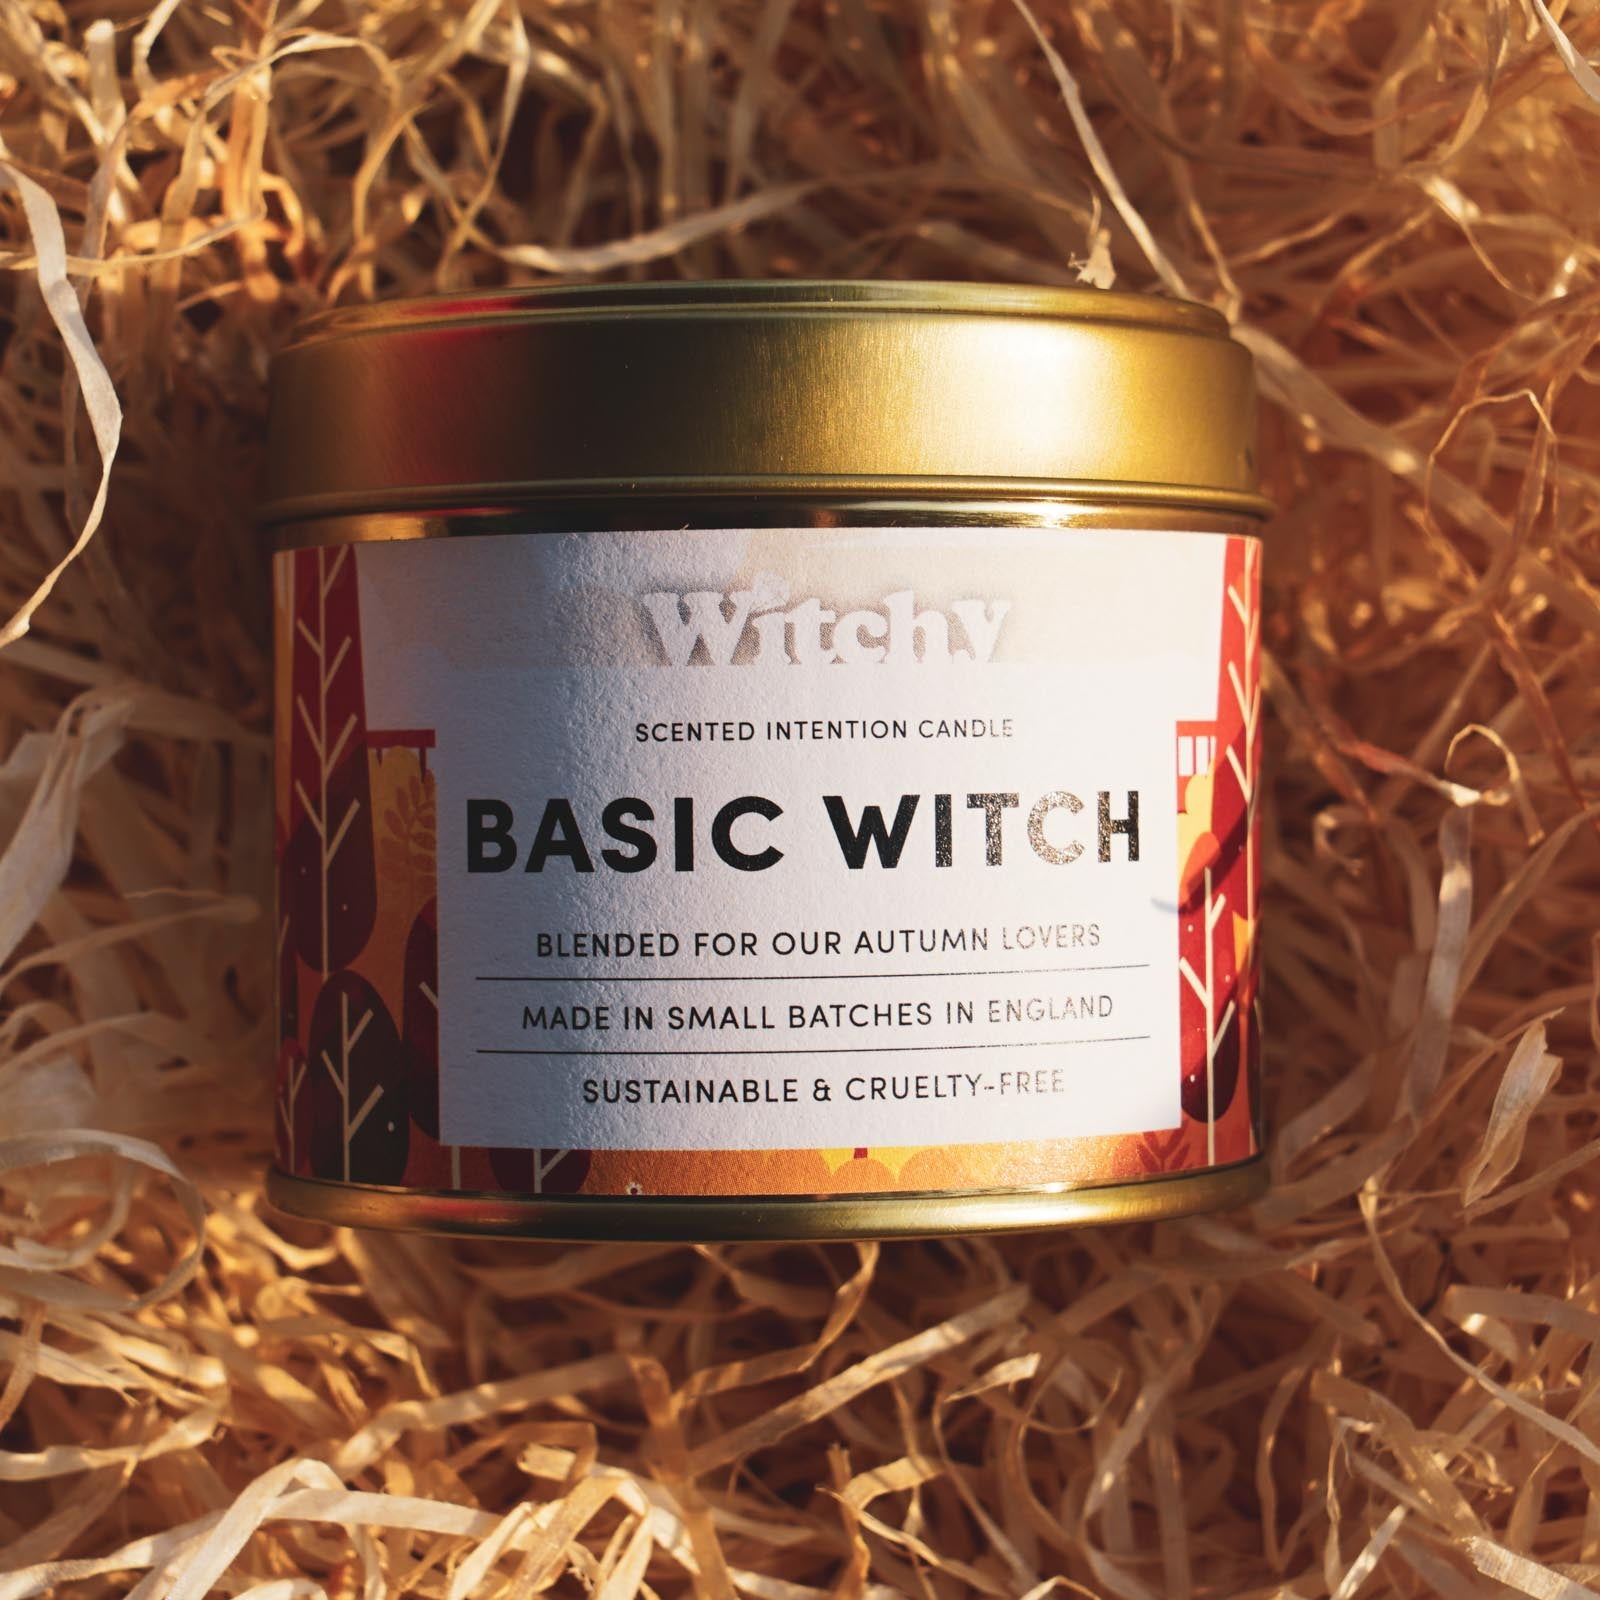 Basic Witch Intention Candle